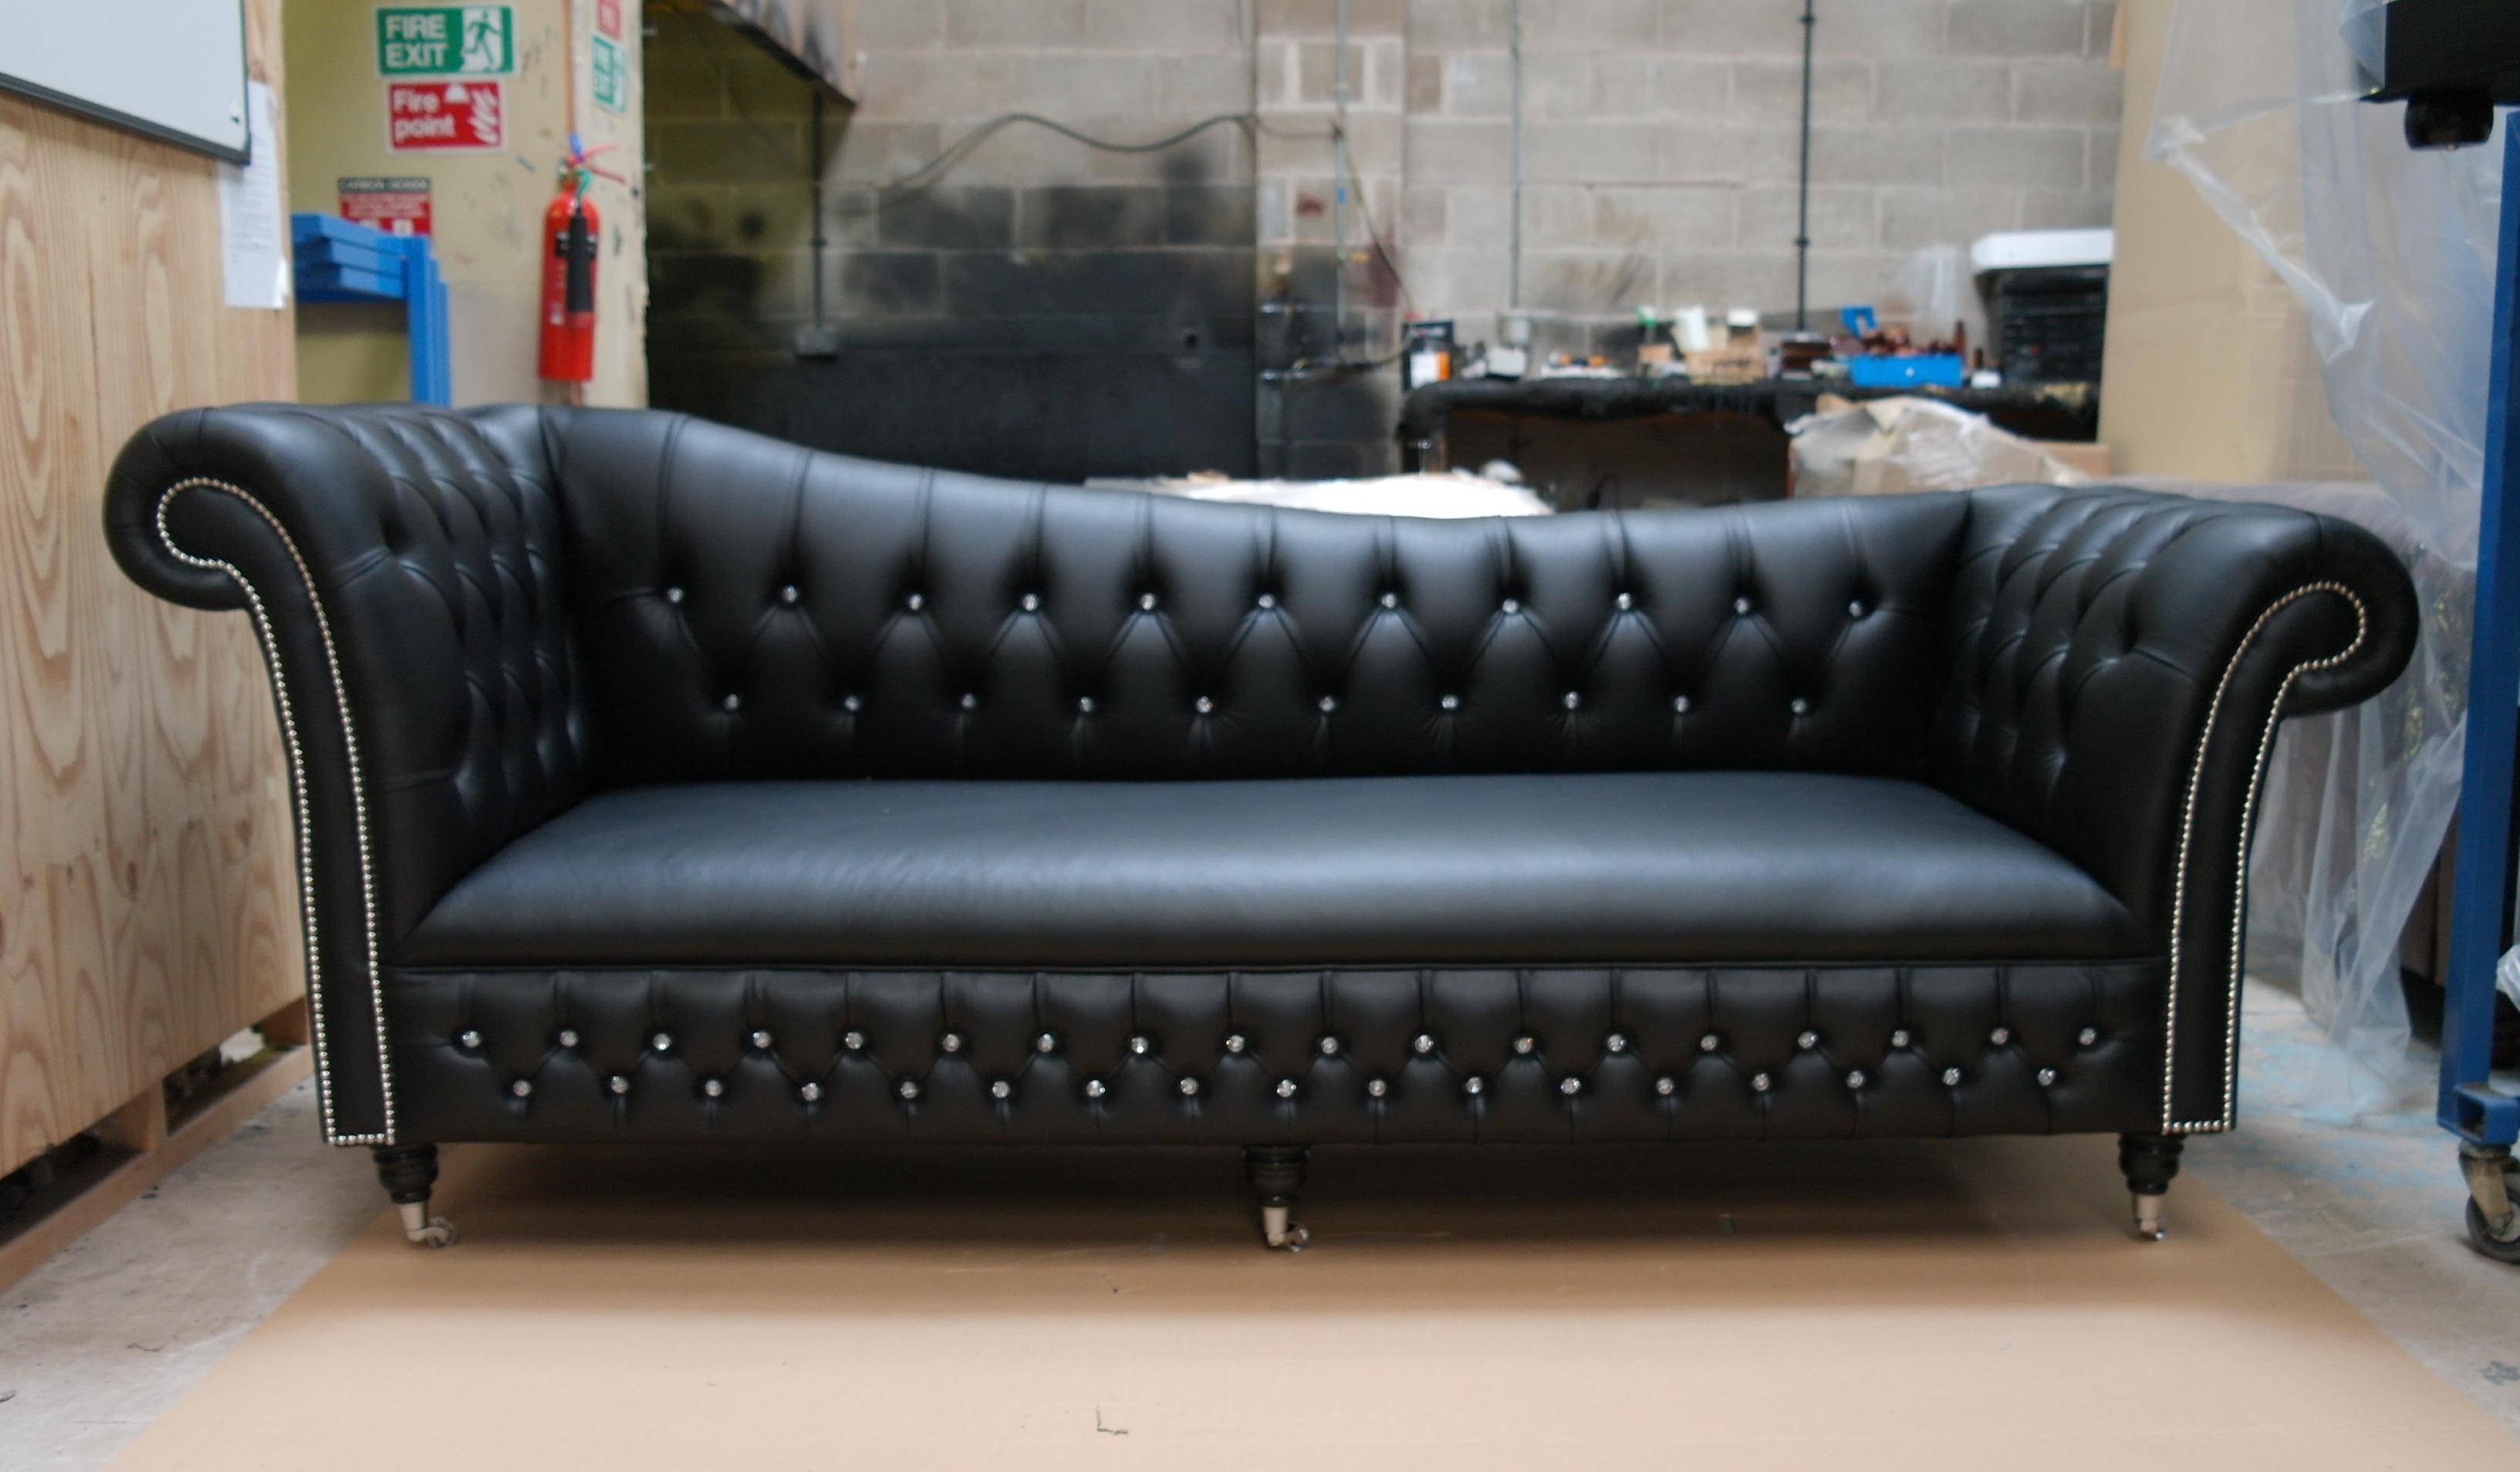 Storage Chesterfield Velvet Effect Small Sofa Black Best Sofa Intended For Chesterfield Black Sofas (View 24 of 30)